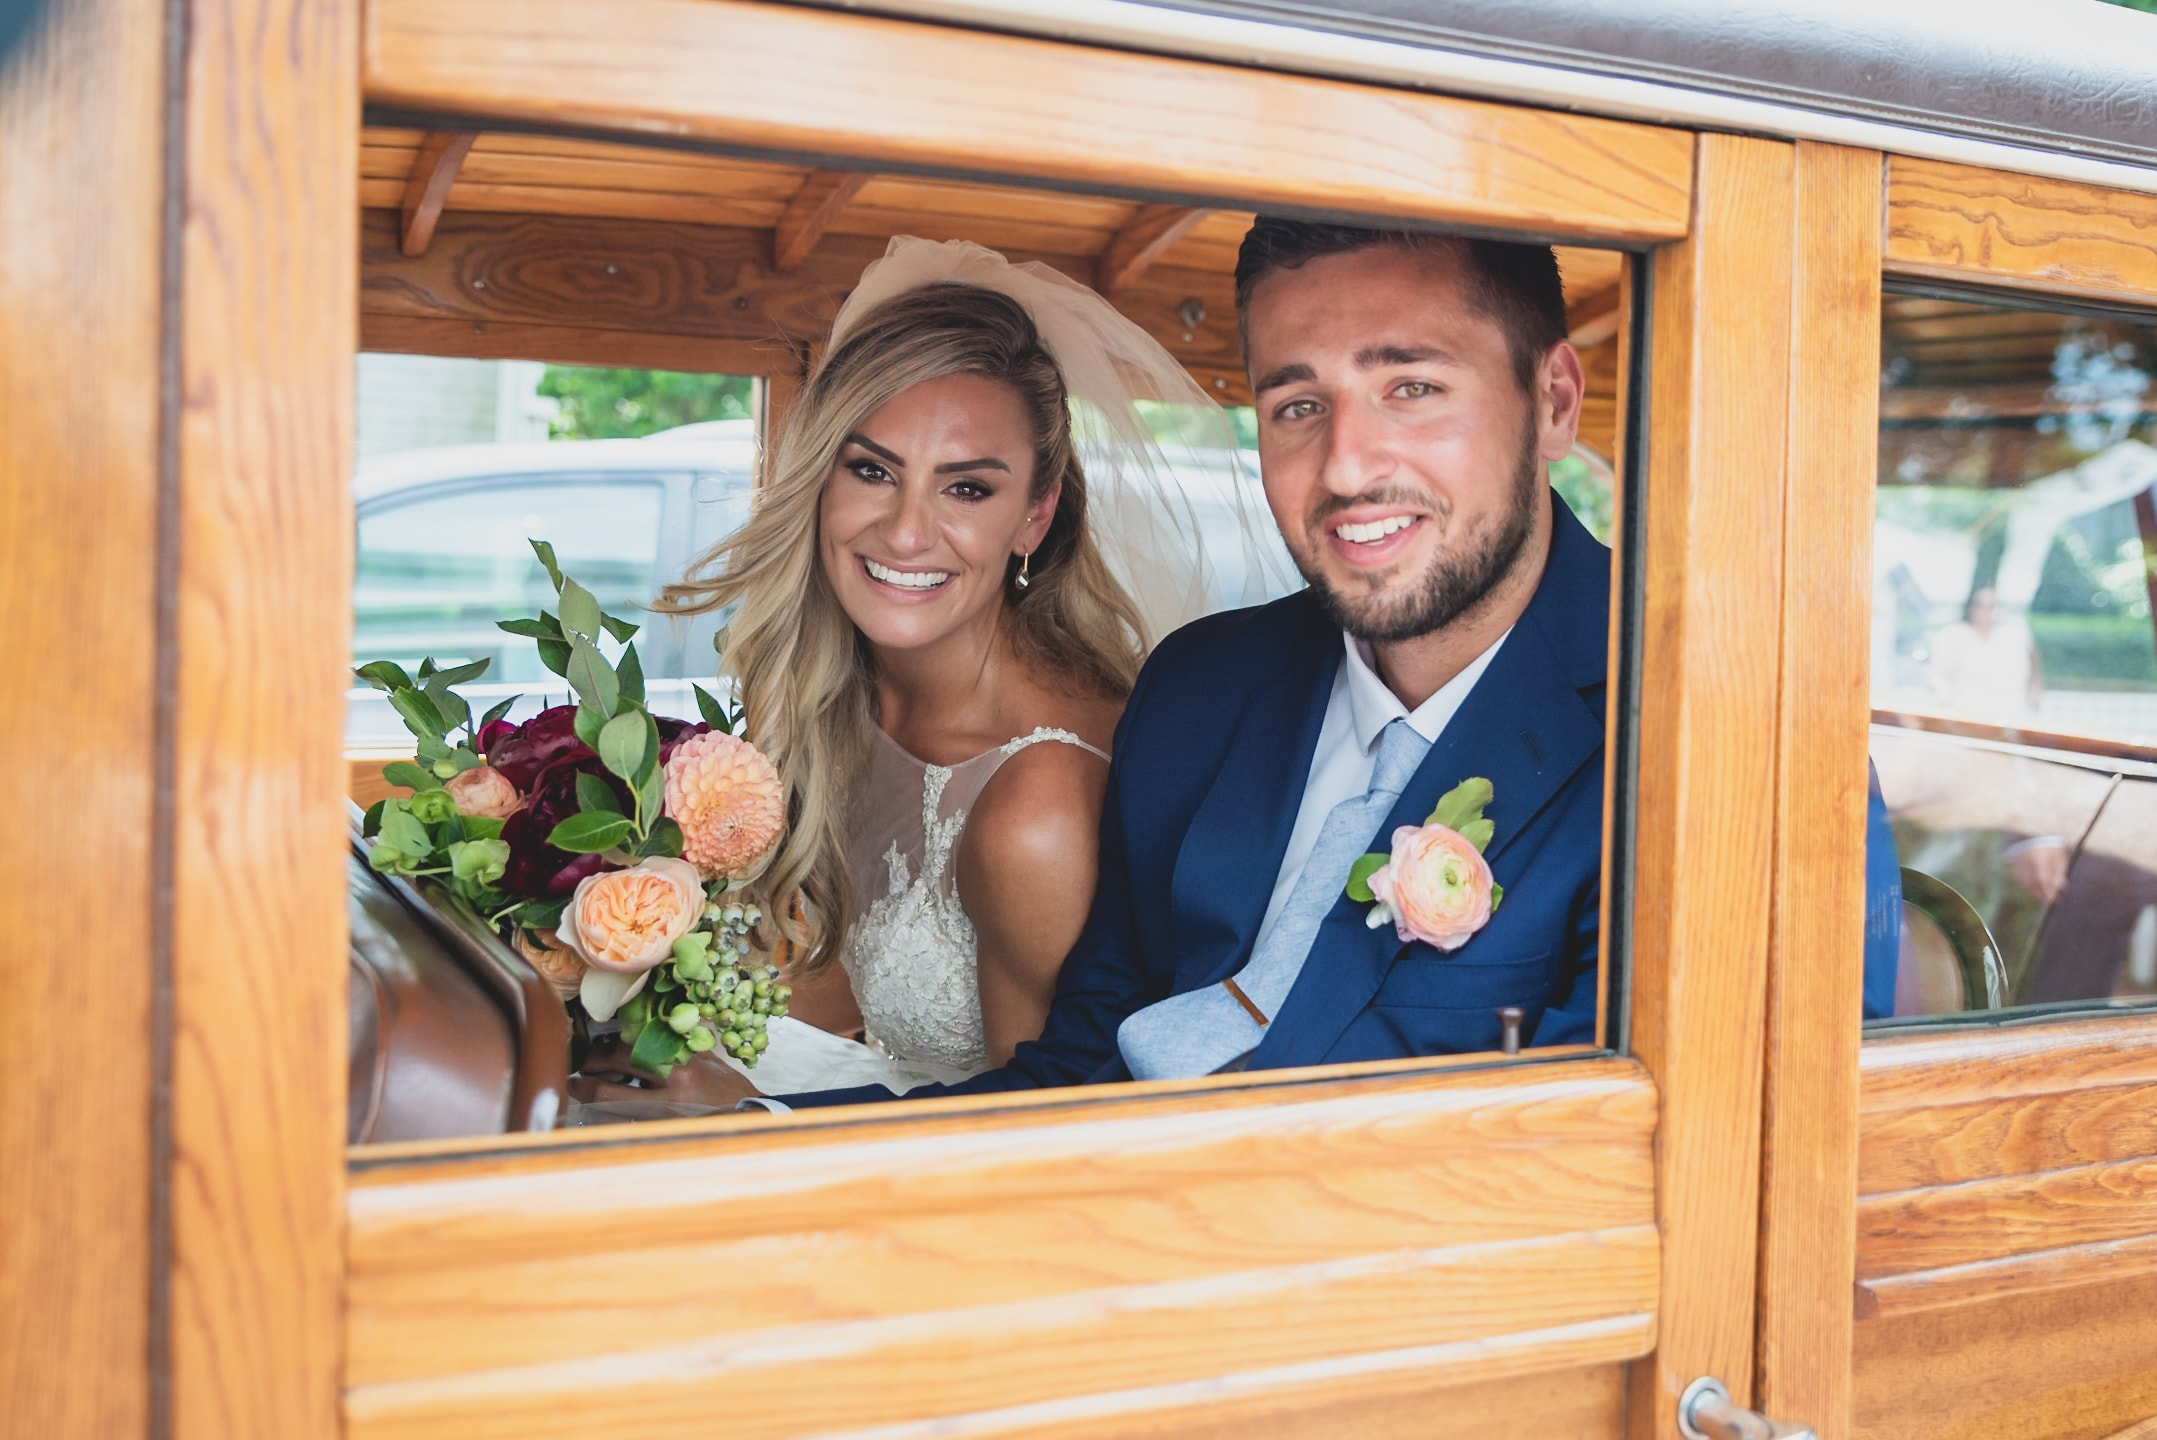 Bride and groom leaving their wedding in a wooden cart.